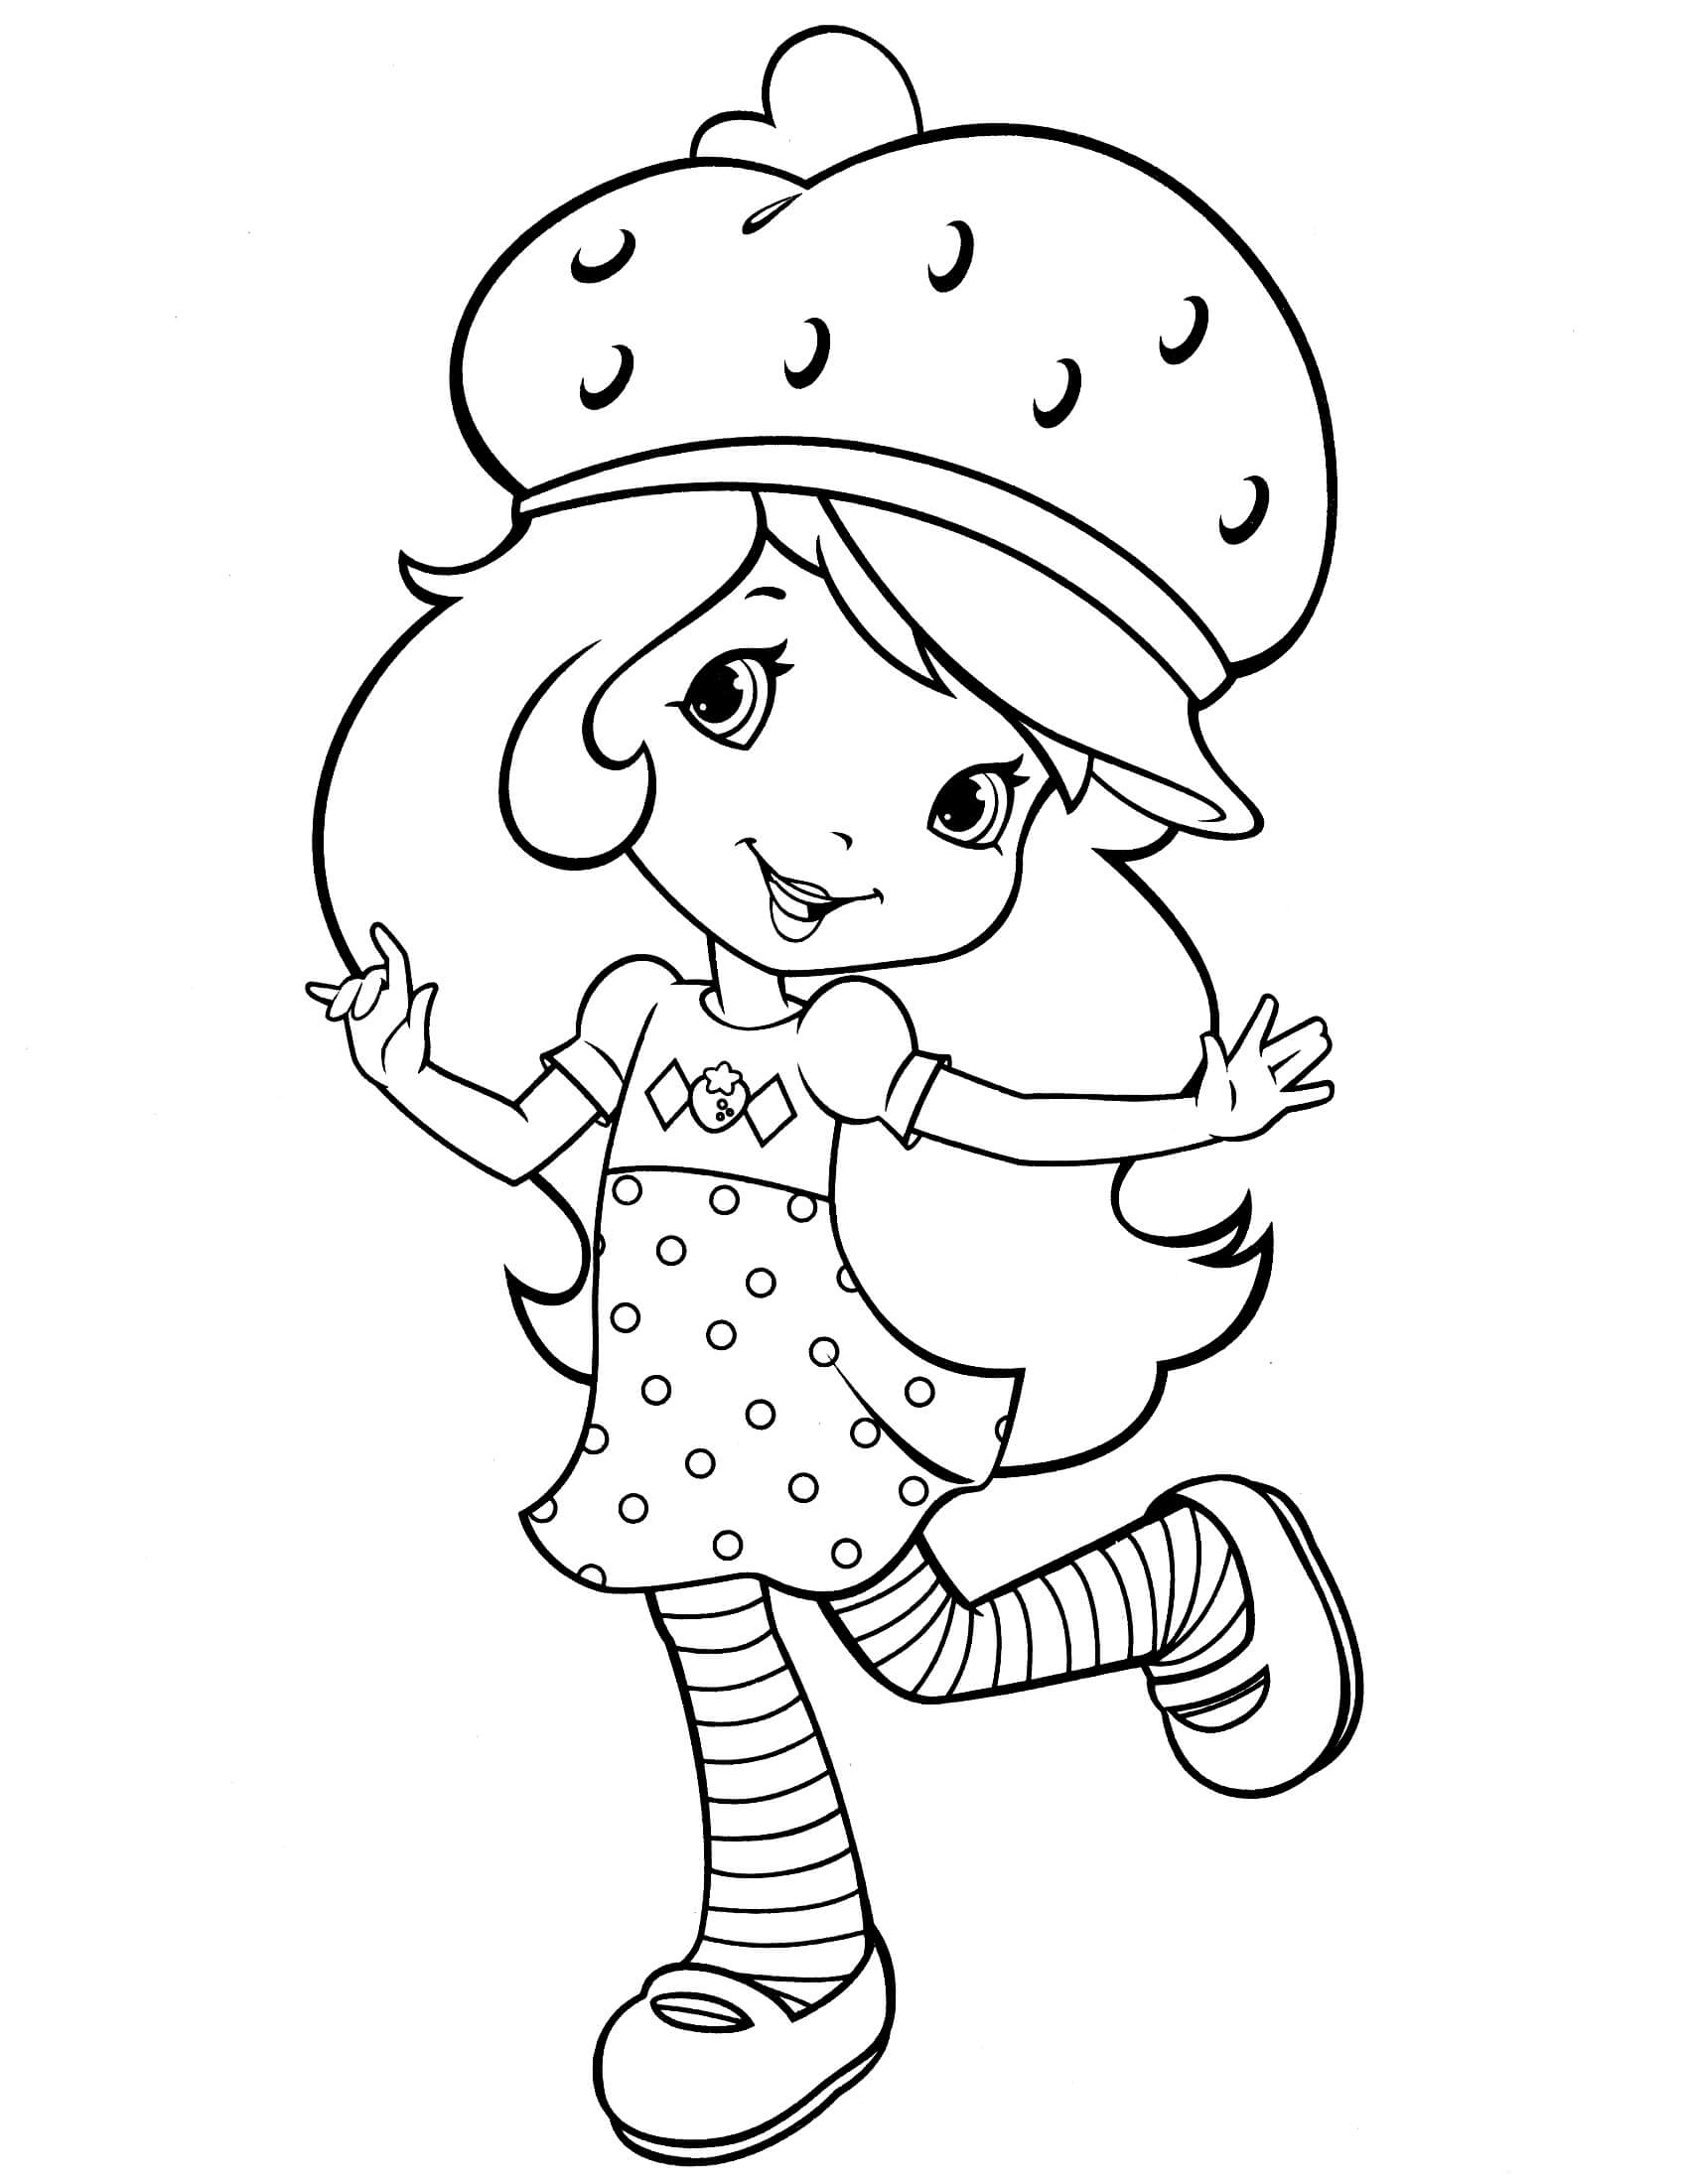 strawberry girl coloring pages sweet girl sketch strawberry shortcake coloring pages strawberry girl coloring pages